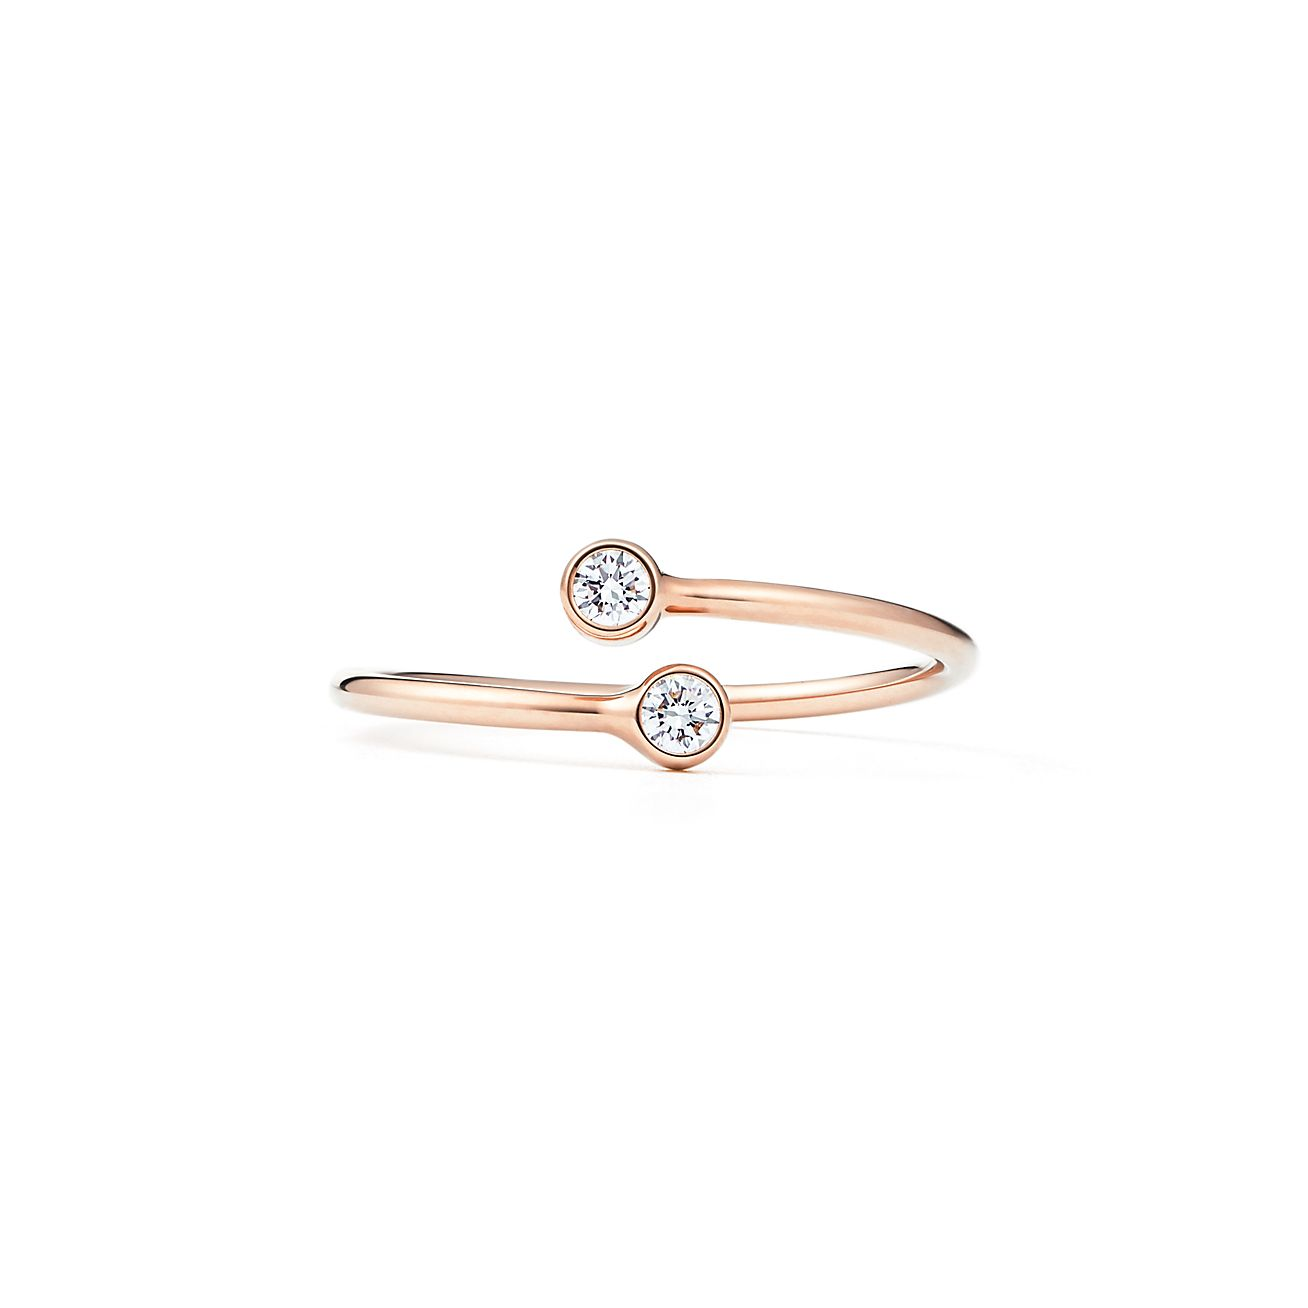 Elsa Peretti stacking band ring in 18k rose gold with diamonds - Size 6 Tiffany & Co.